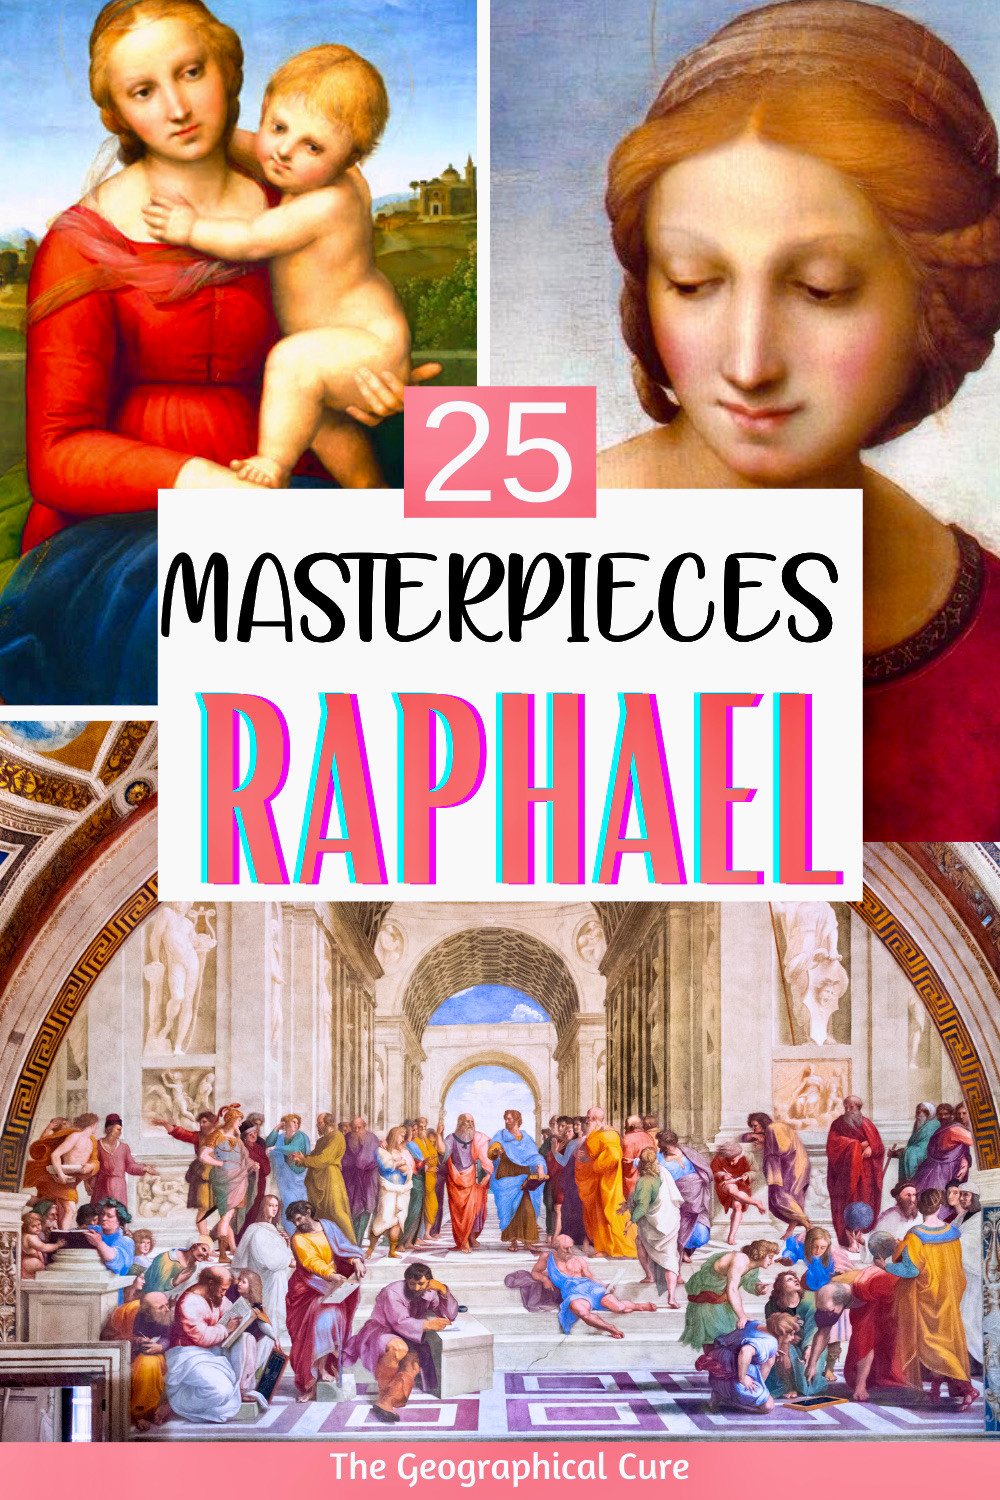 guide to 25 masterpieces by Raphael